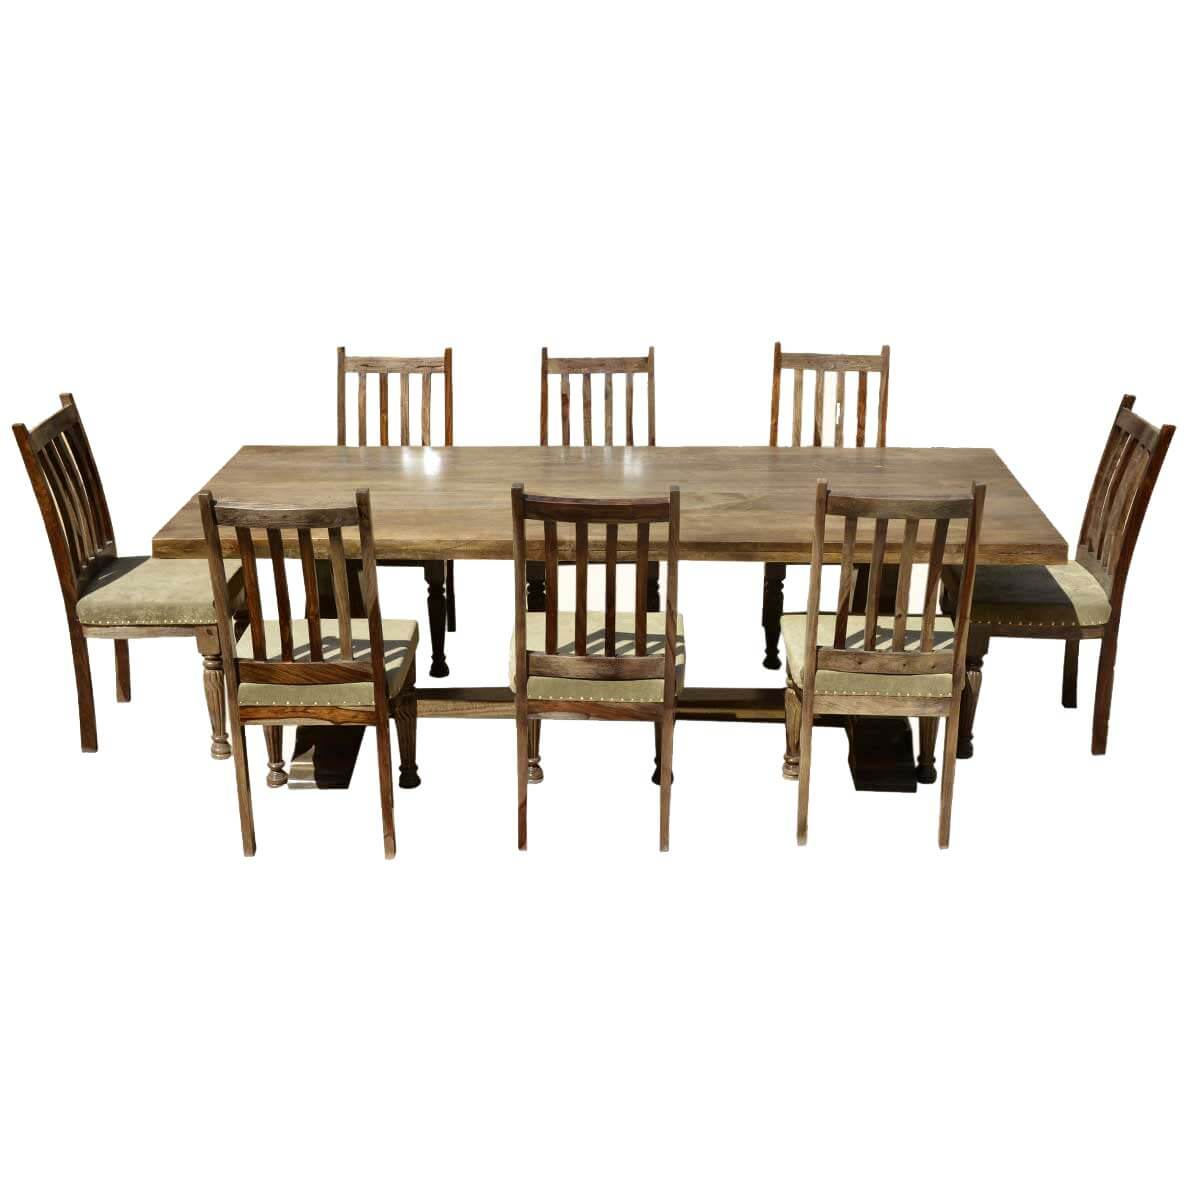 Farmhouse solid wood trestle rustic dining table for Rustic dining room sets